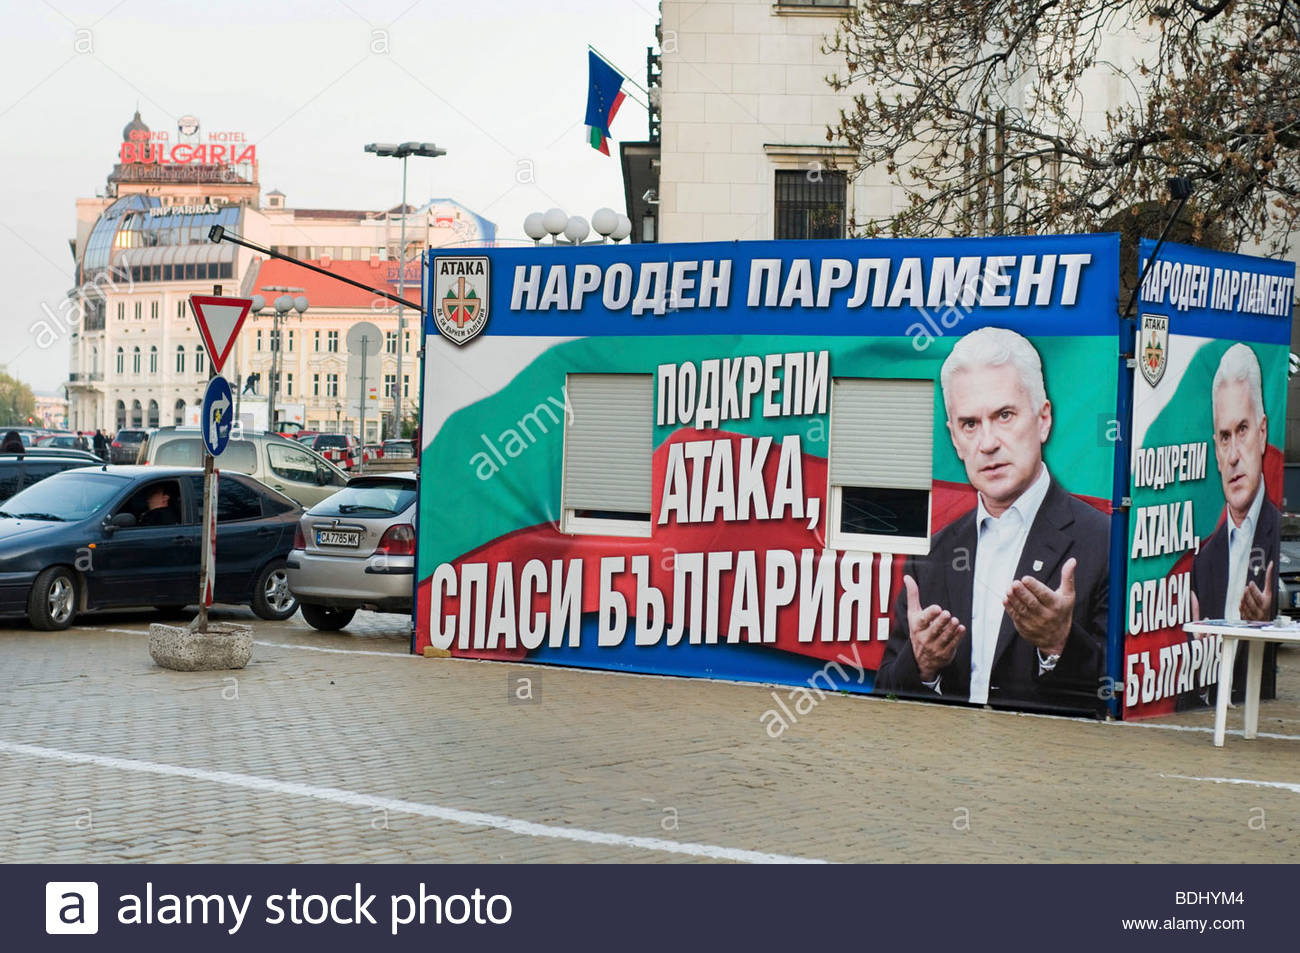 Election poster for the right-wing nationalist Ataka party in Sofia, Bulgaria. - Stock Image